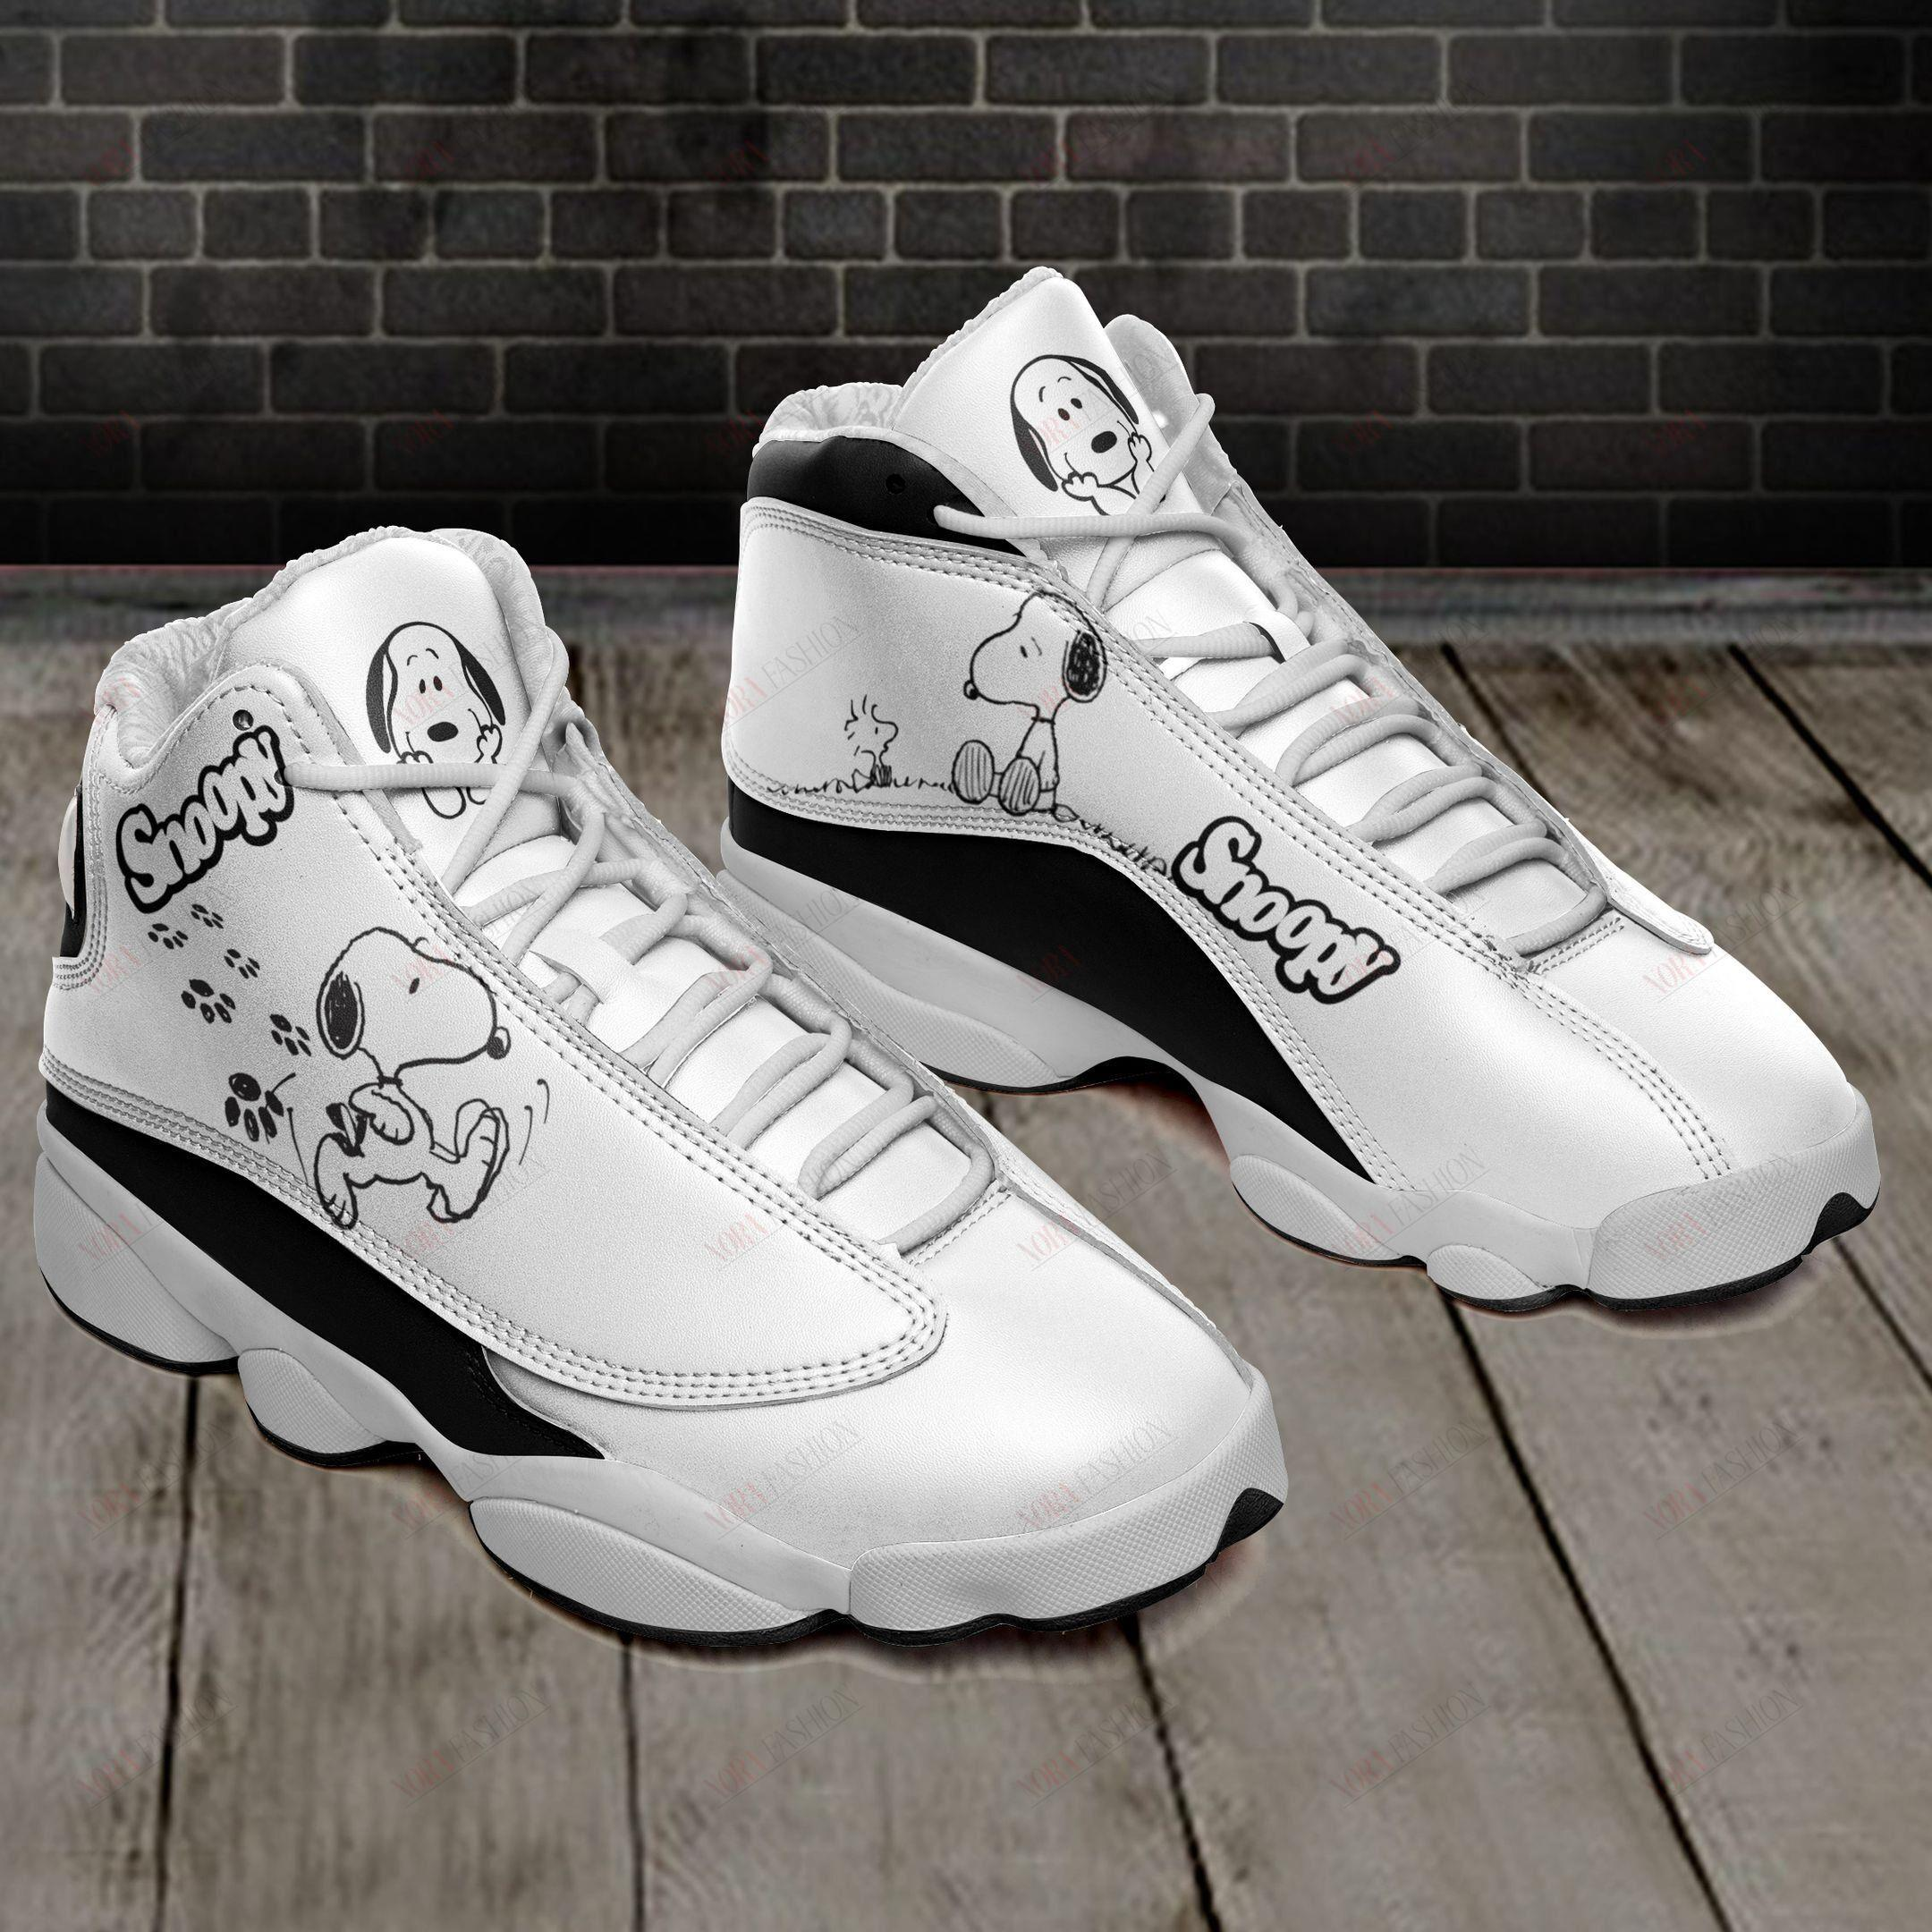 Snoopy Air Air Jordan 13 Sneakers Sport Shoes